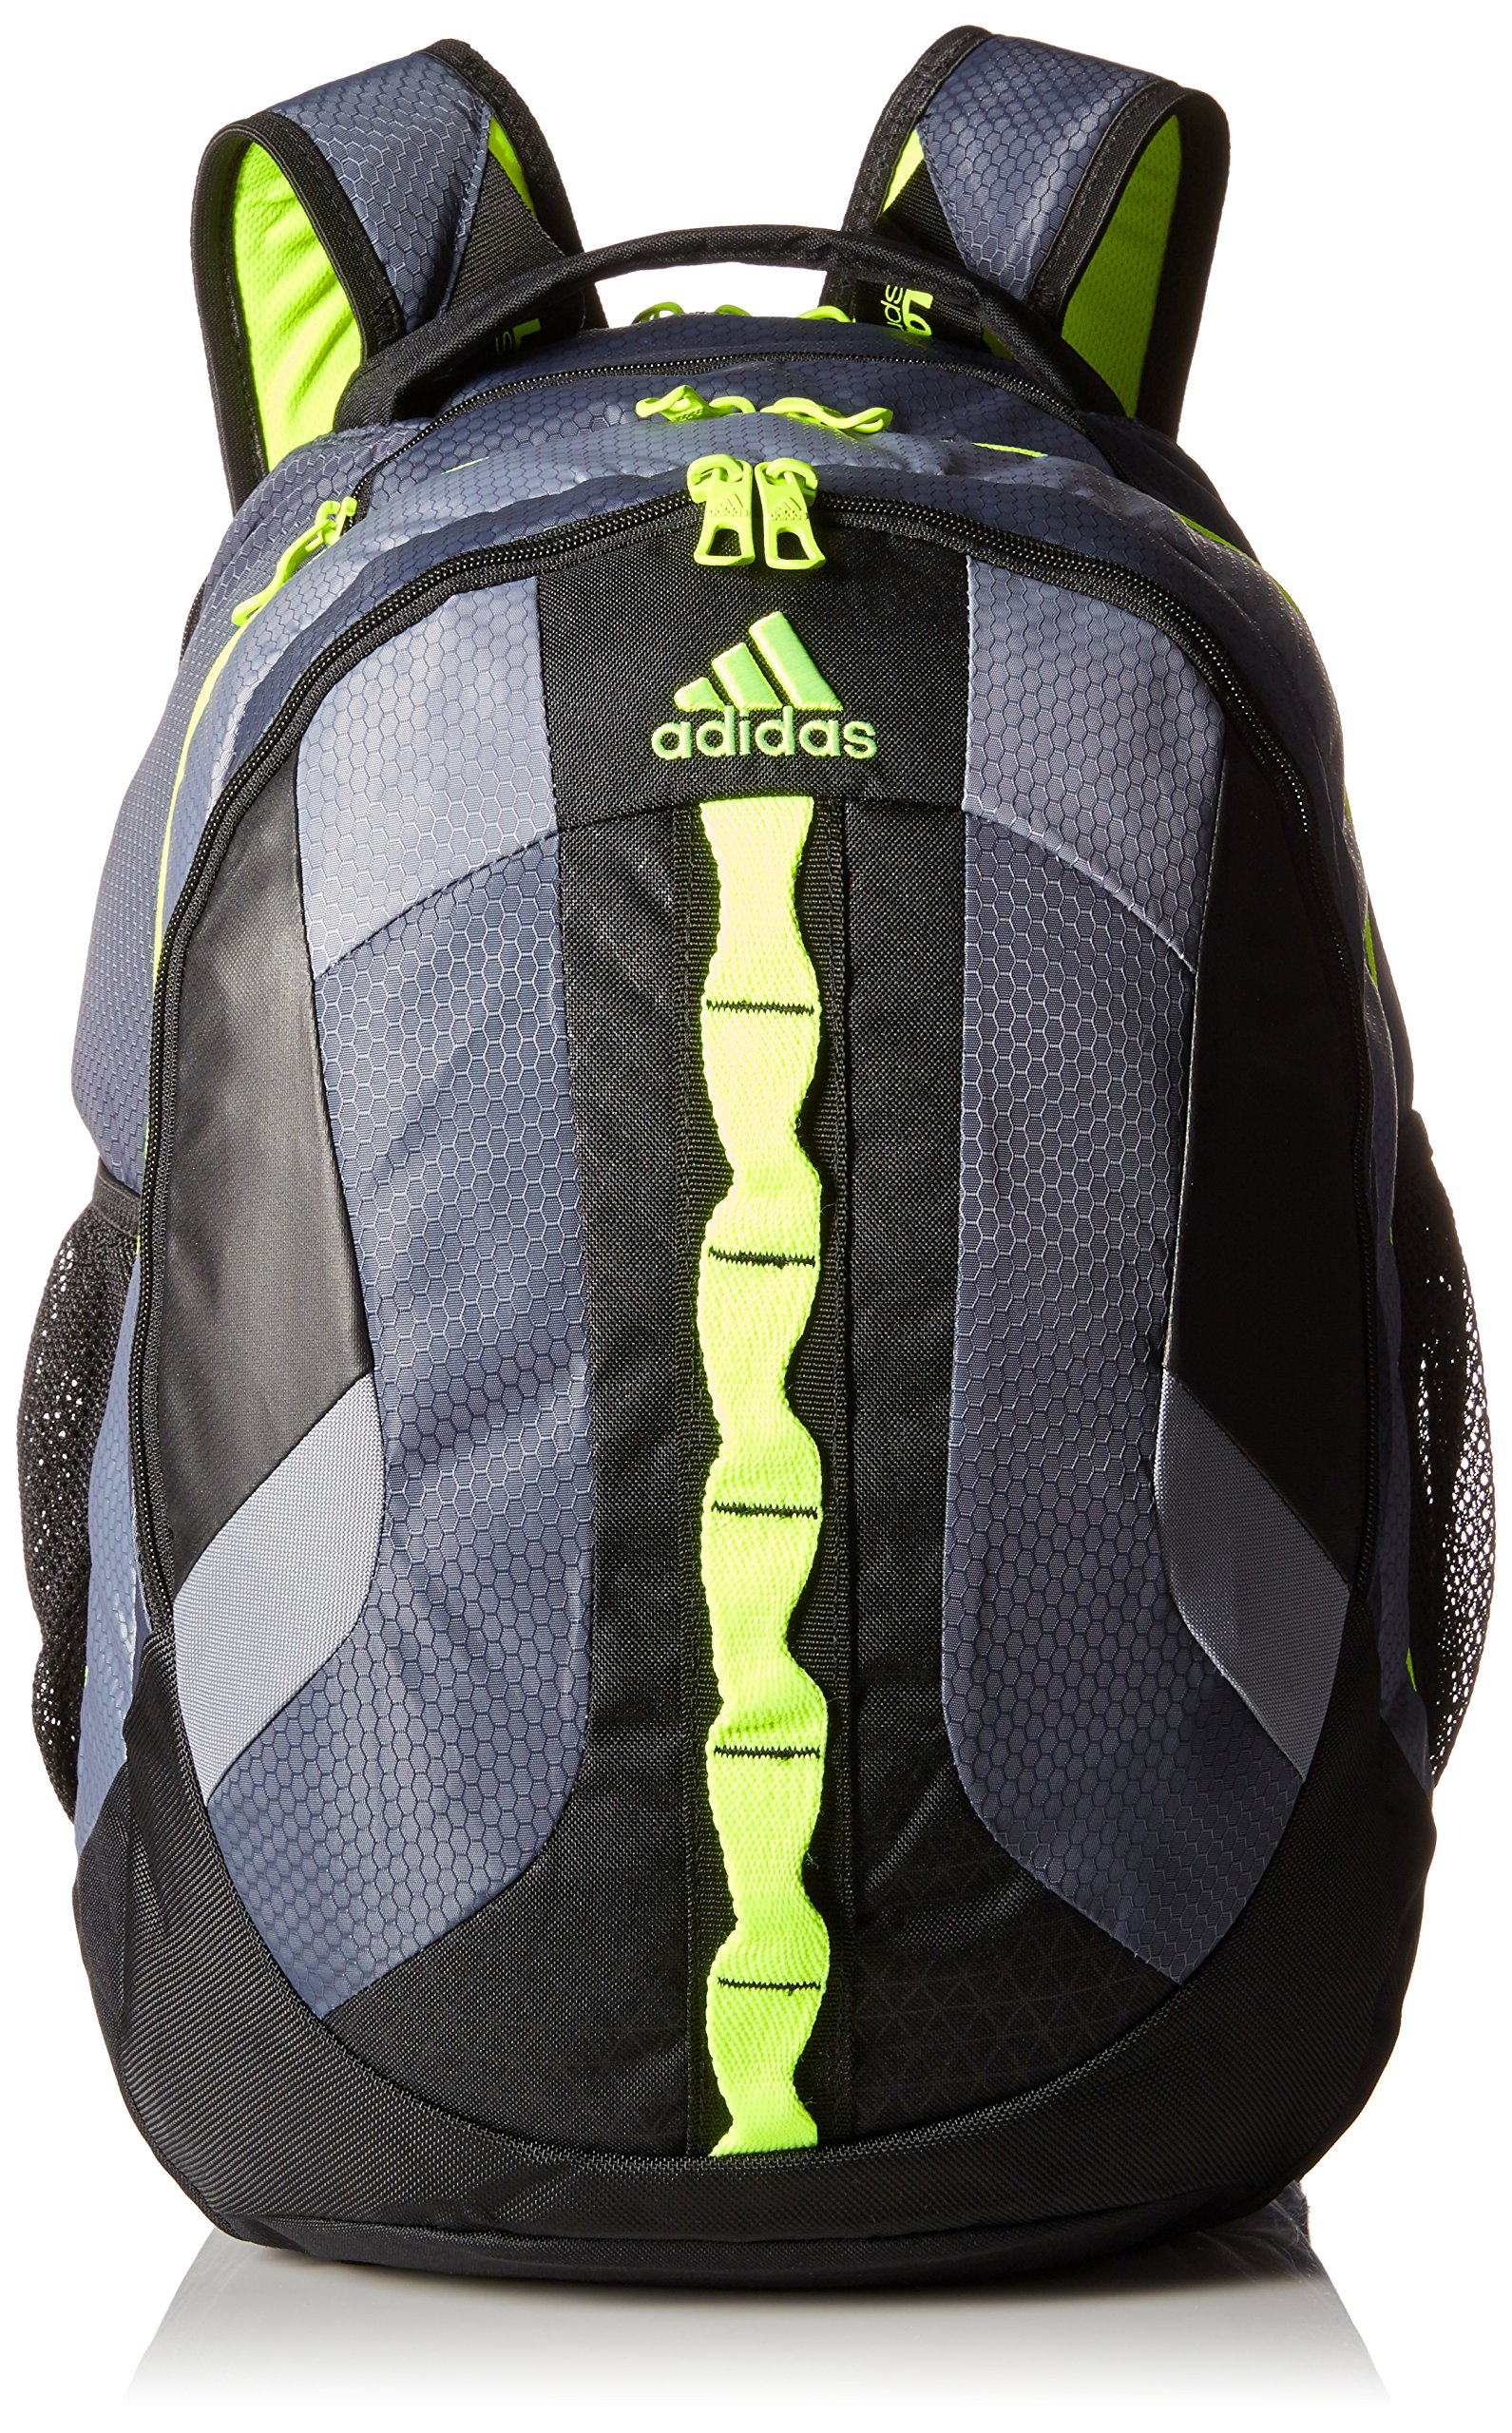 Galleon adidas prime backpack deepest space solar yellow one size jpg  1591x2560 Adidas prime xxl backpack b6c7c3946369d